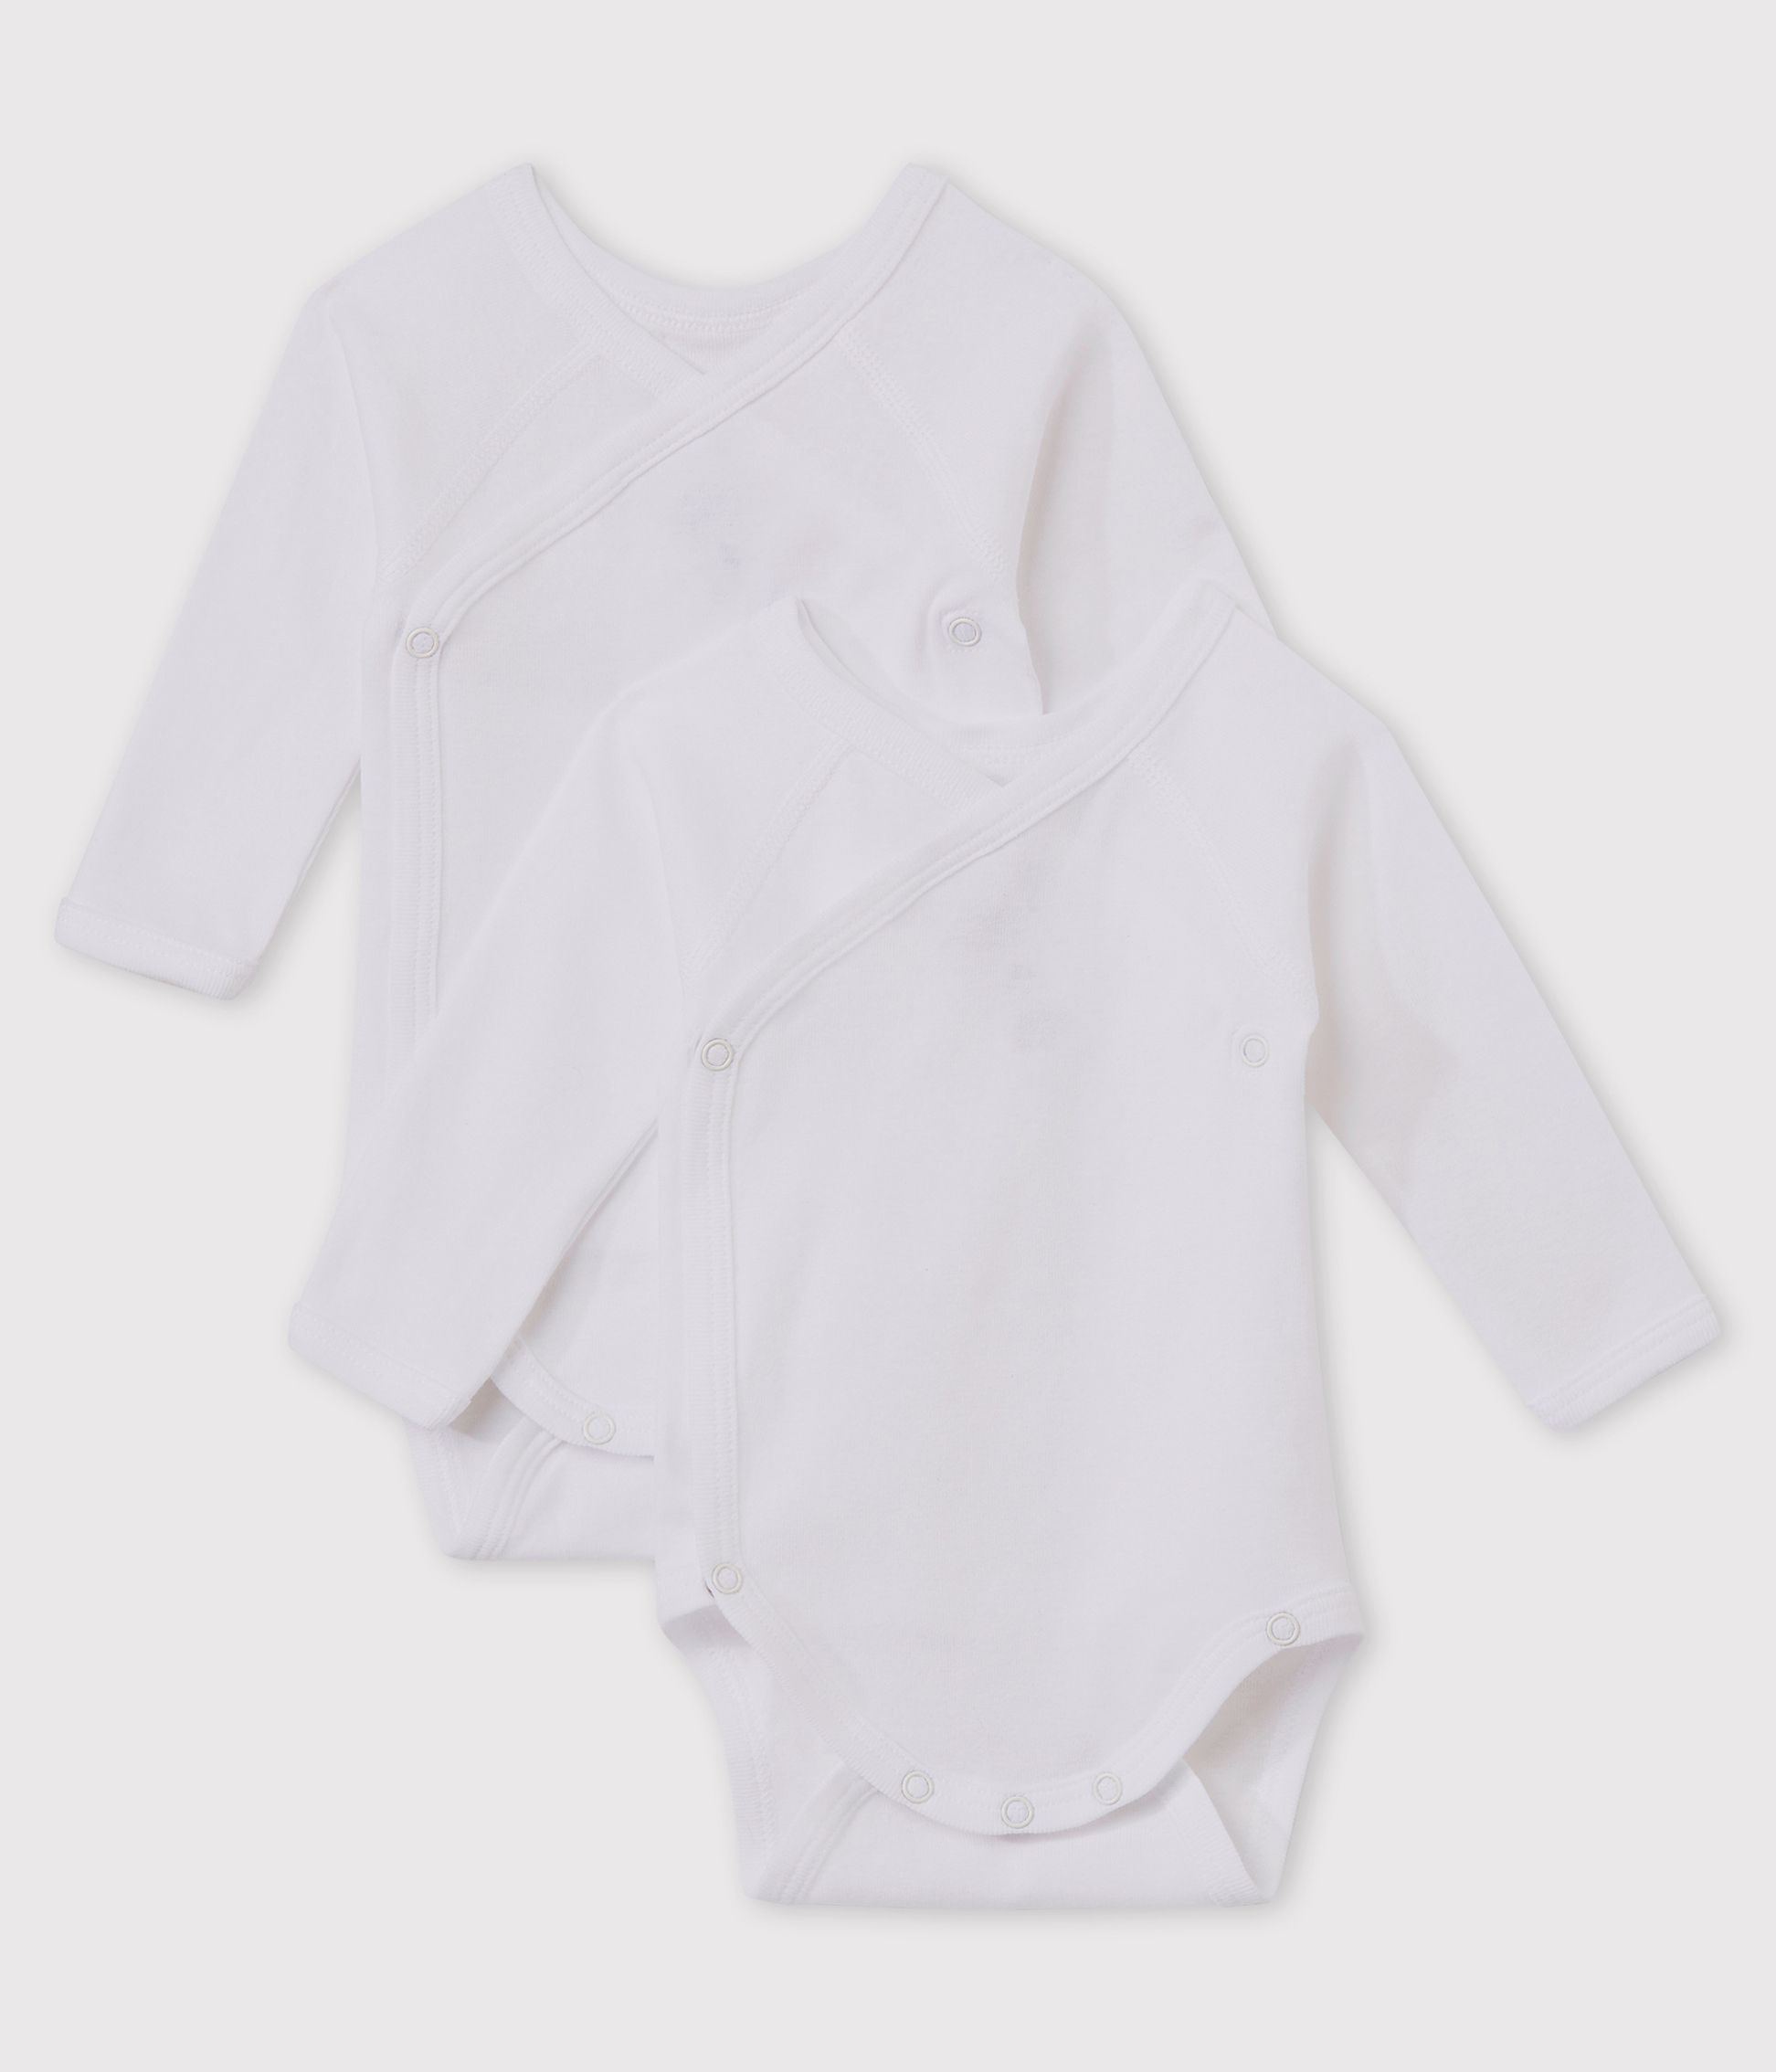 Babies' White Long-sleeved Wrapover Organic Cotton Bodysuits - 2-Pack